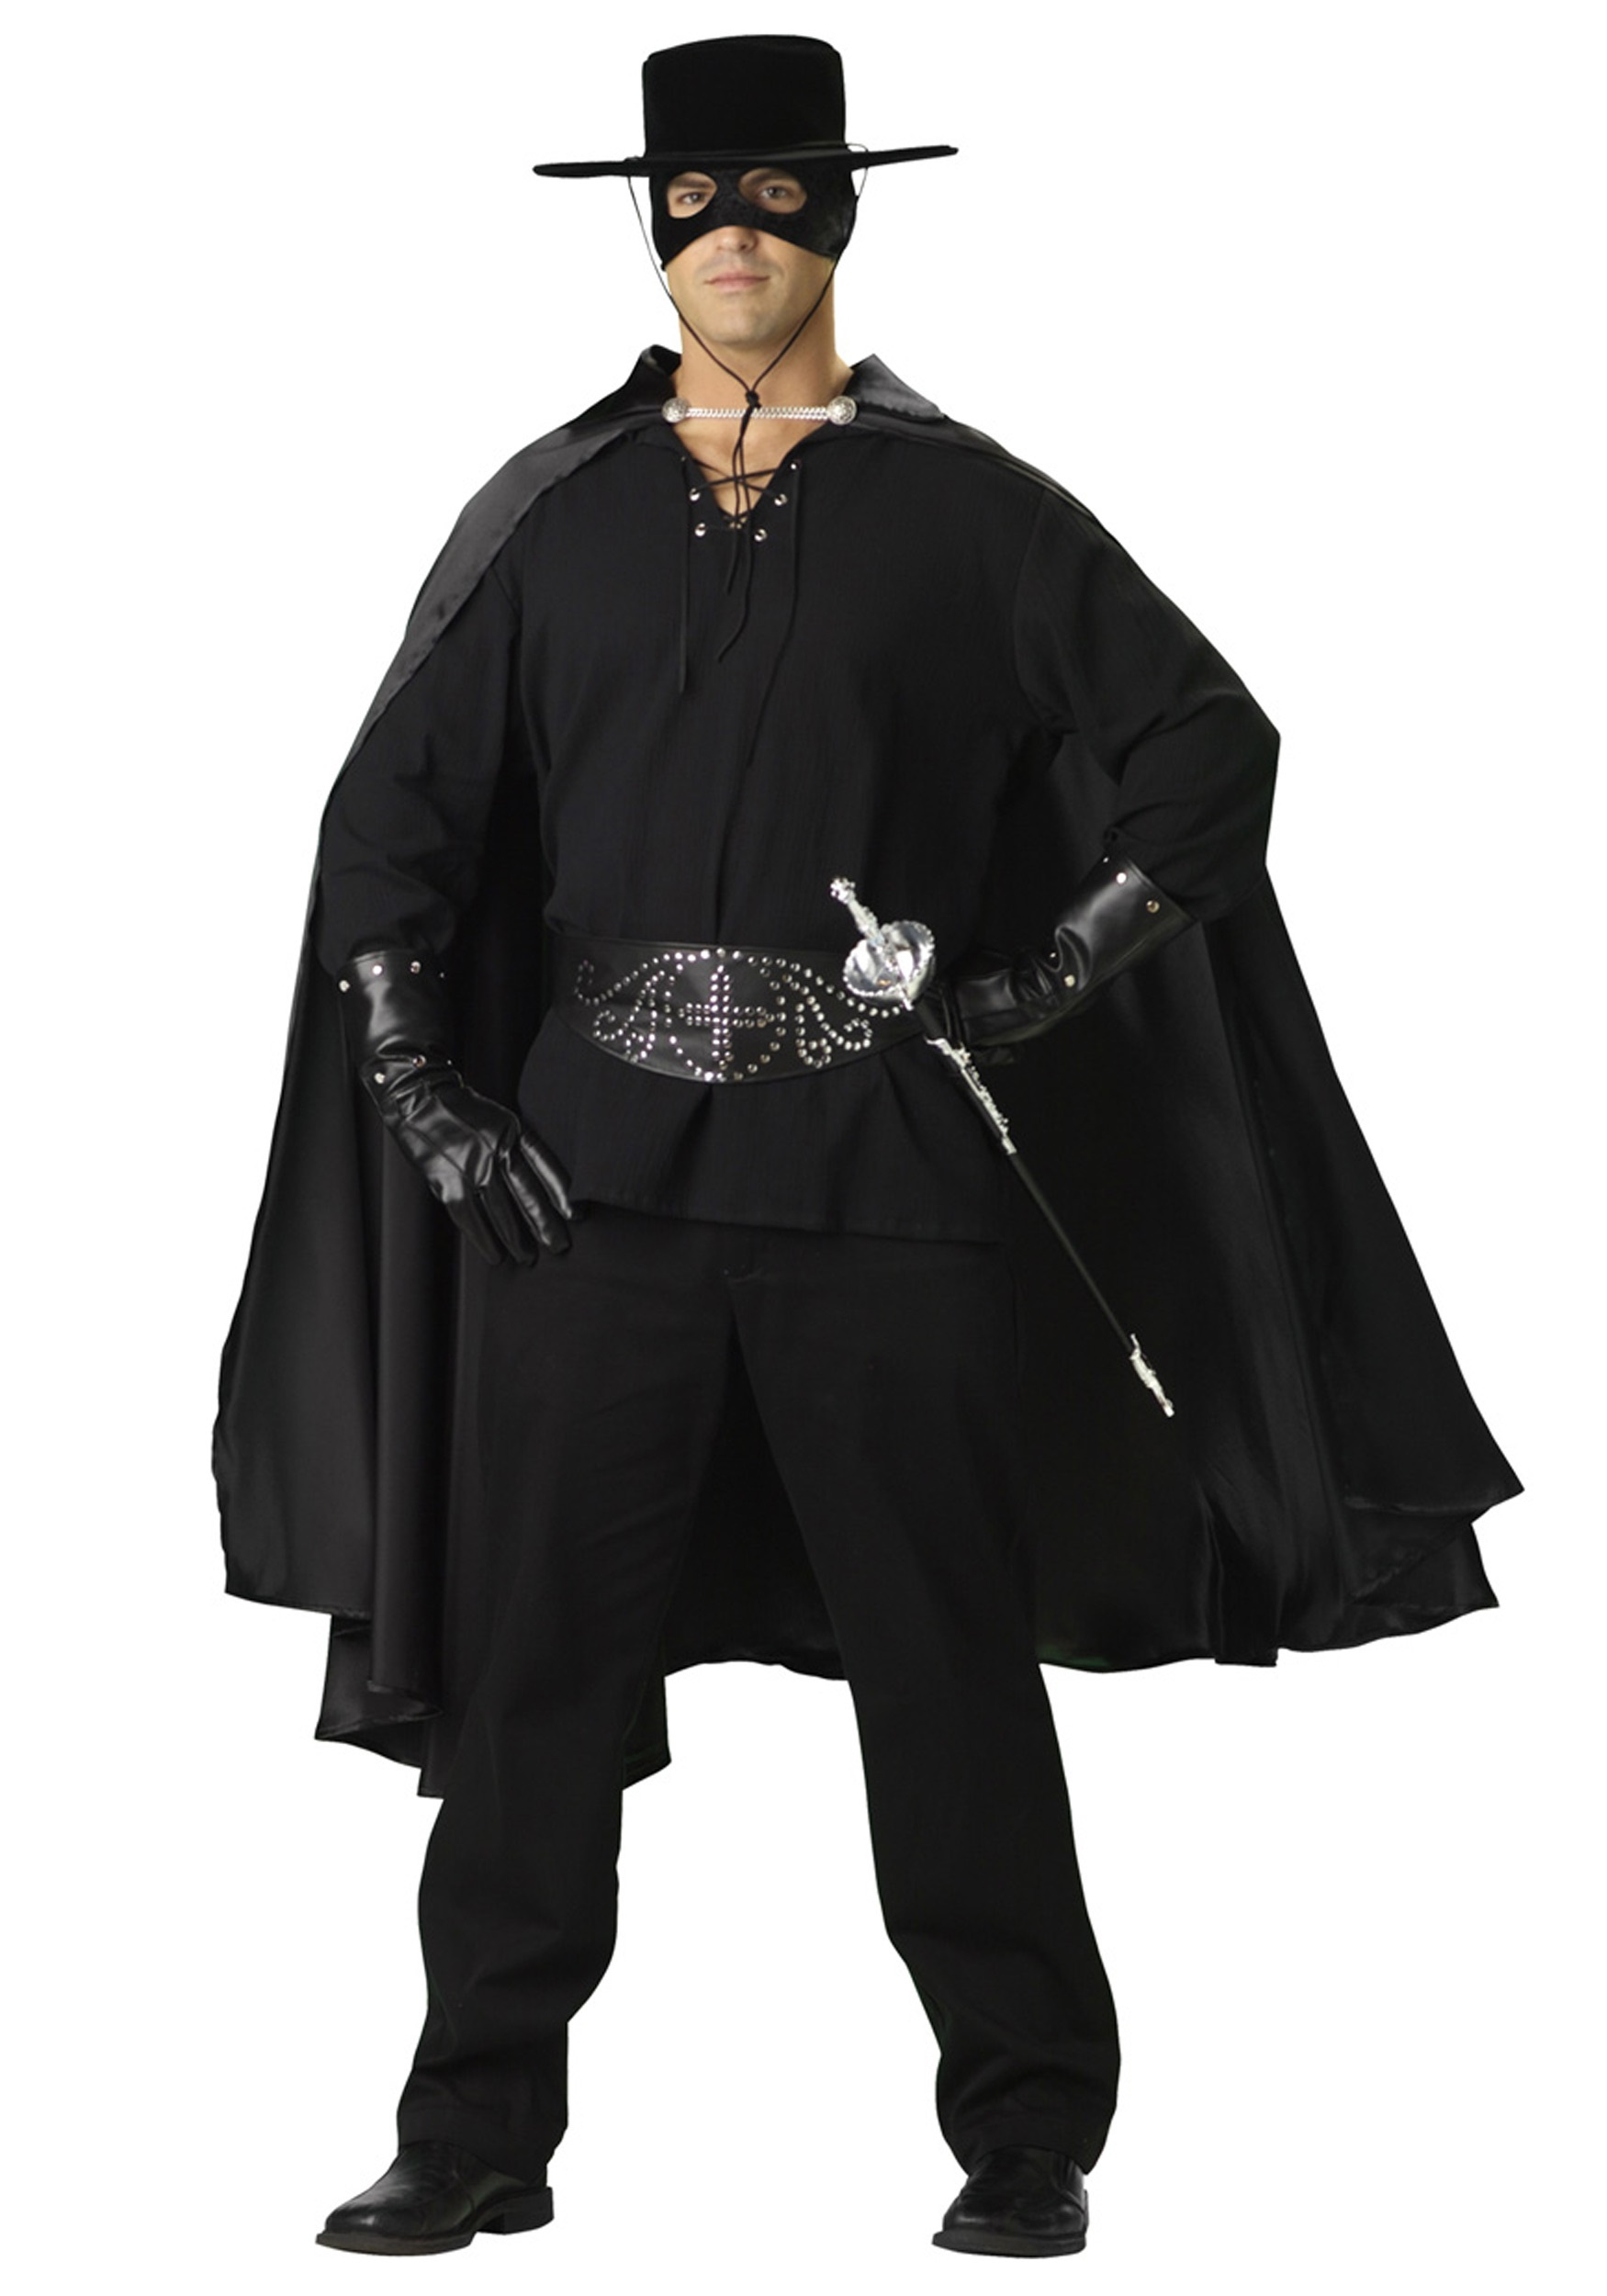 sc 1 st  Halloween Costumes : authentic zorro costume  - Germanpascual.Com